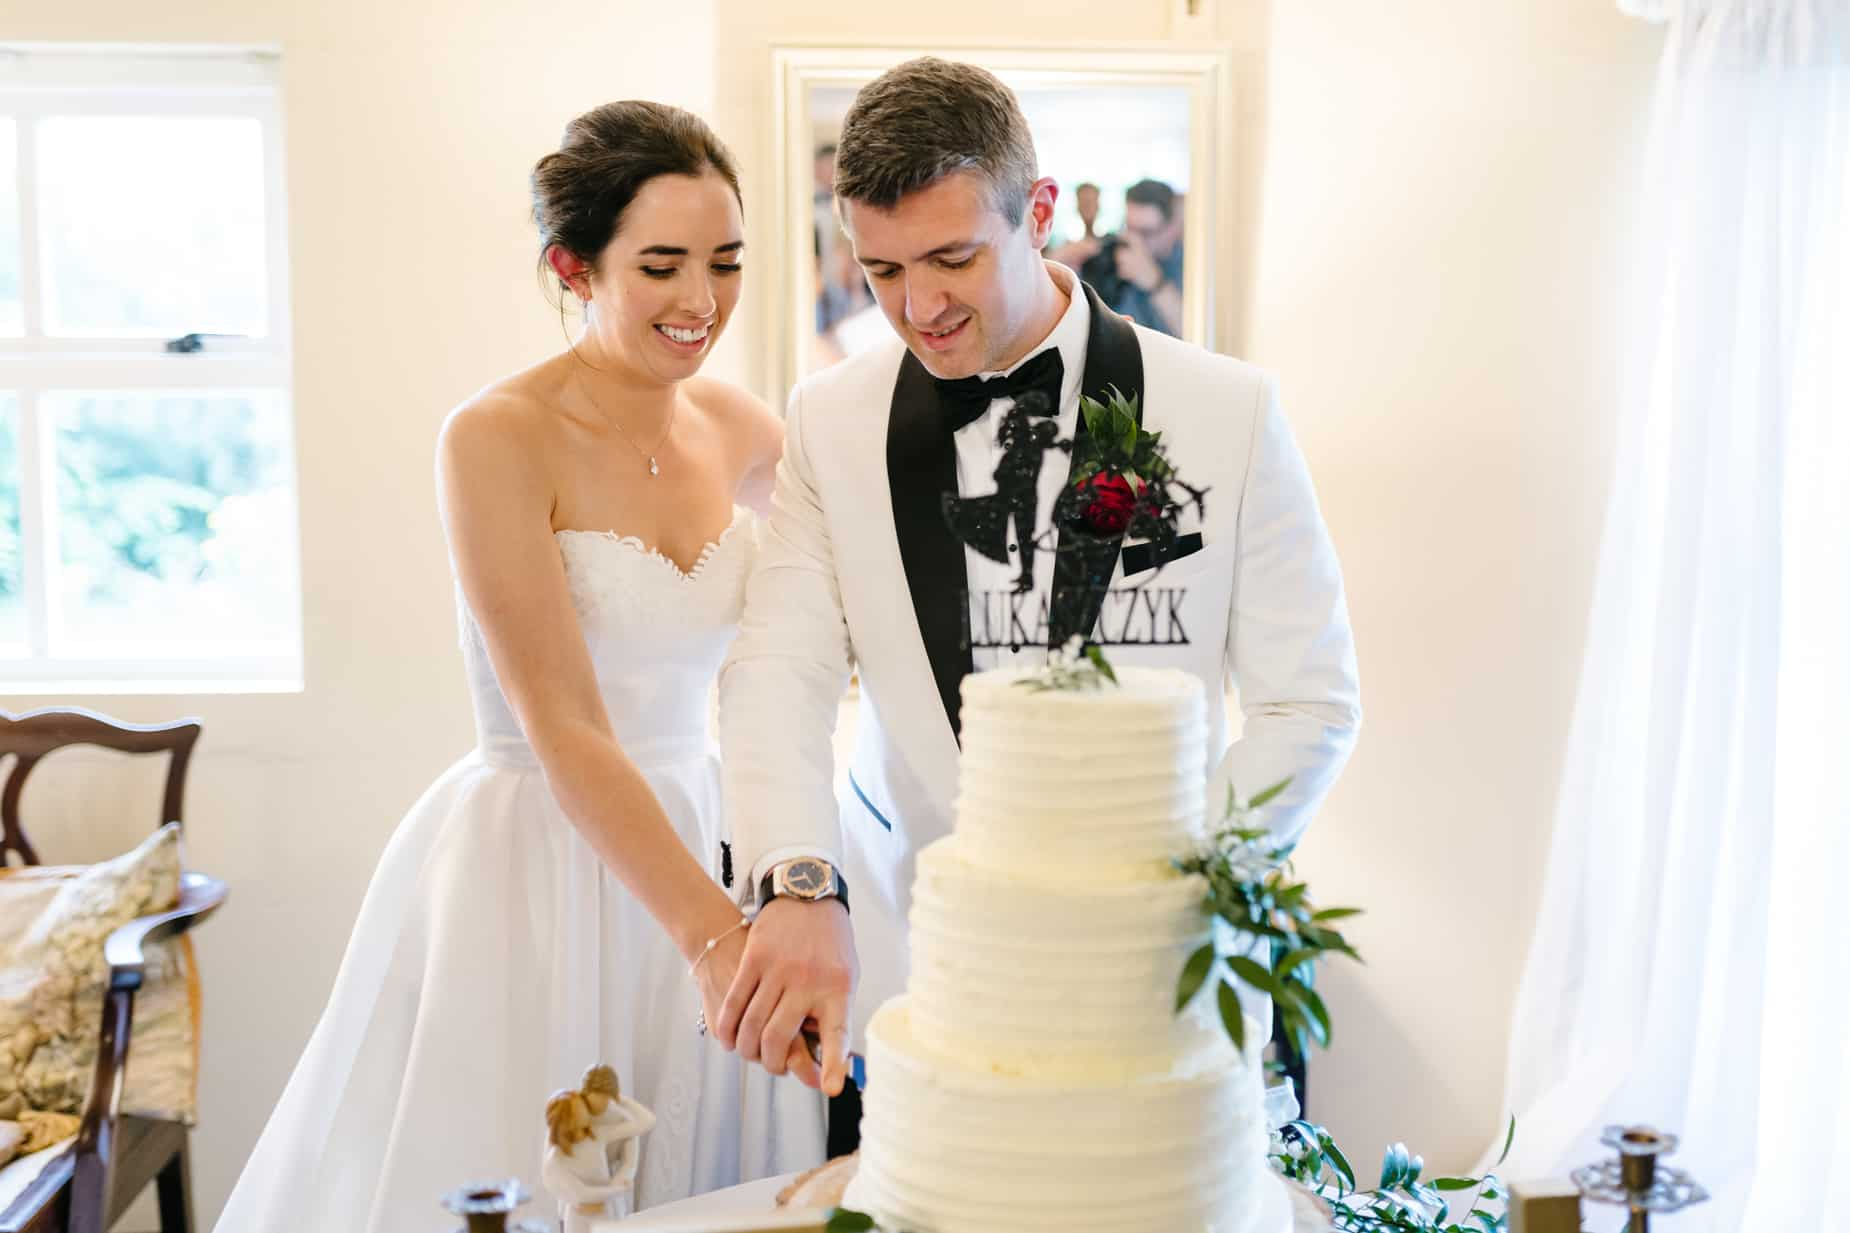 bride and groom in a white jacket cutting their wedding cake